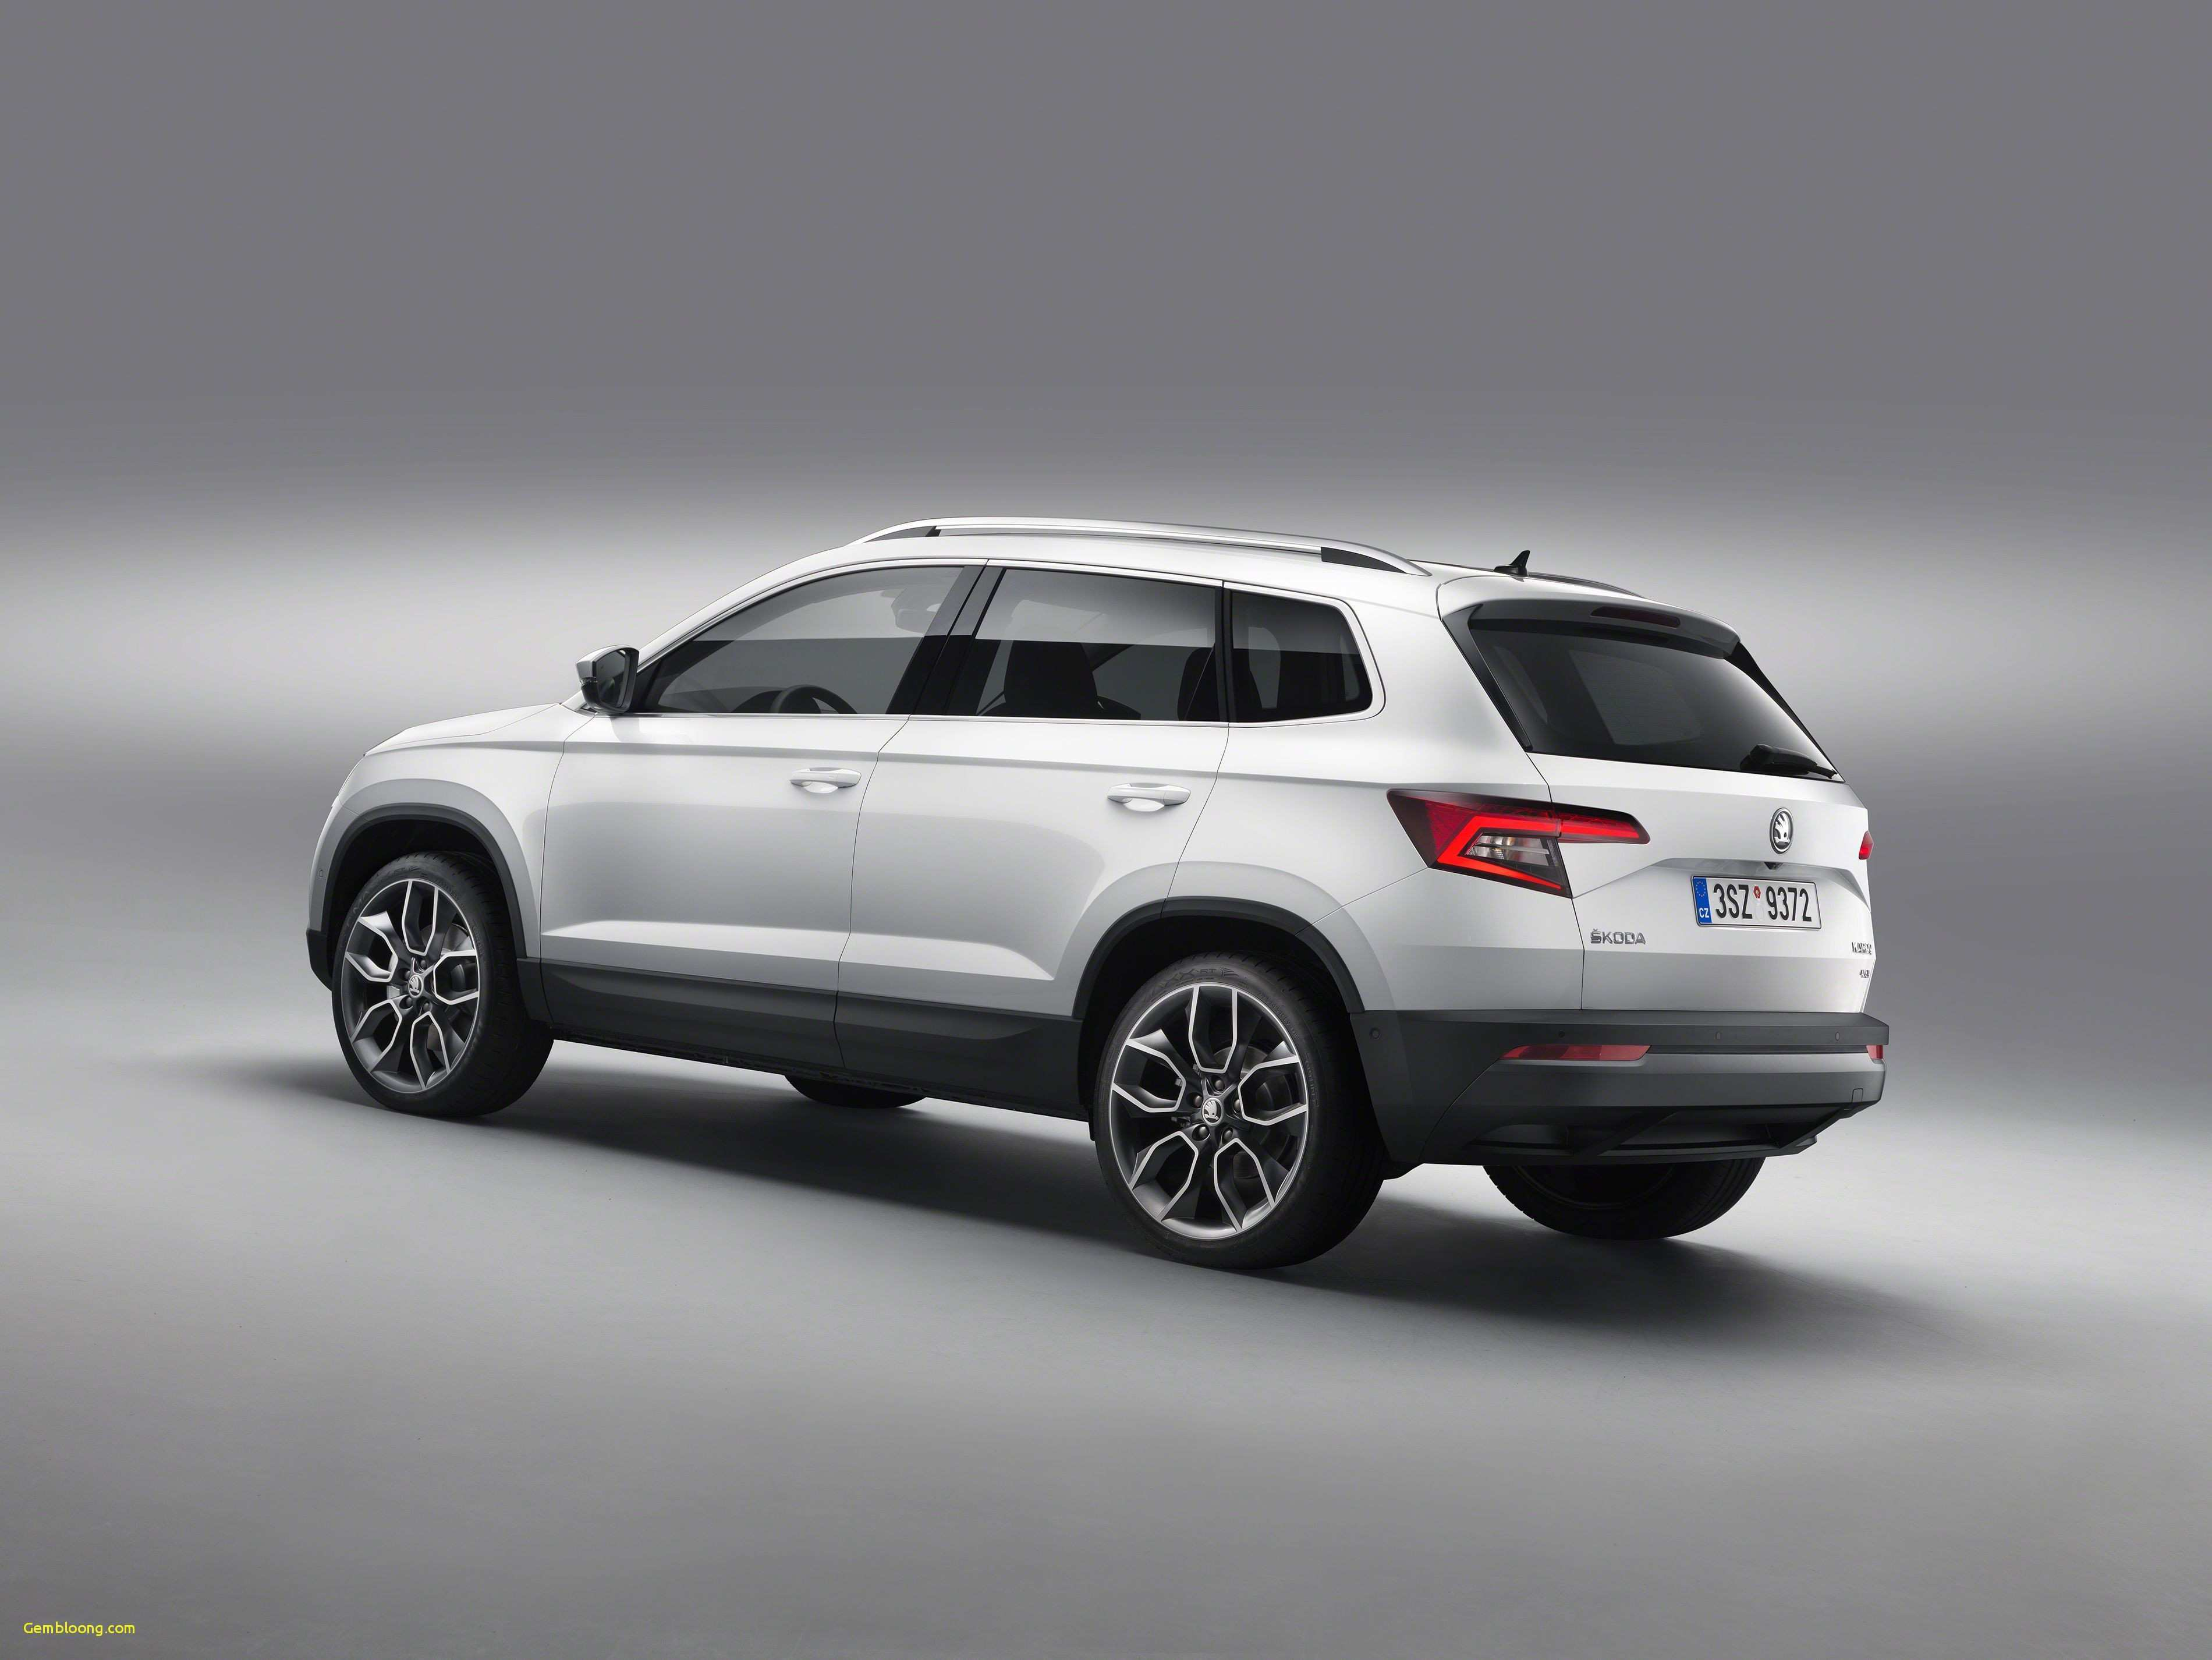 40 The Best 2019 Skoda Snowman Release Date And Concept